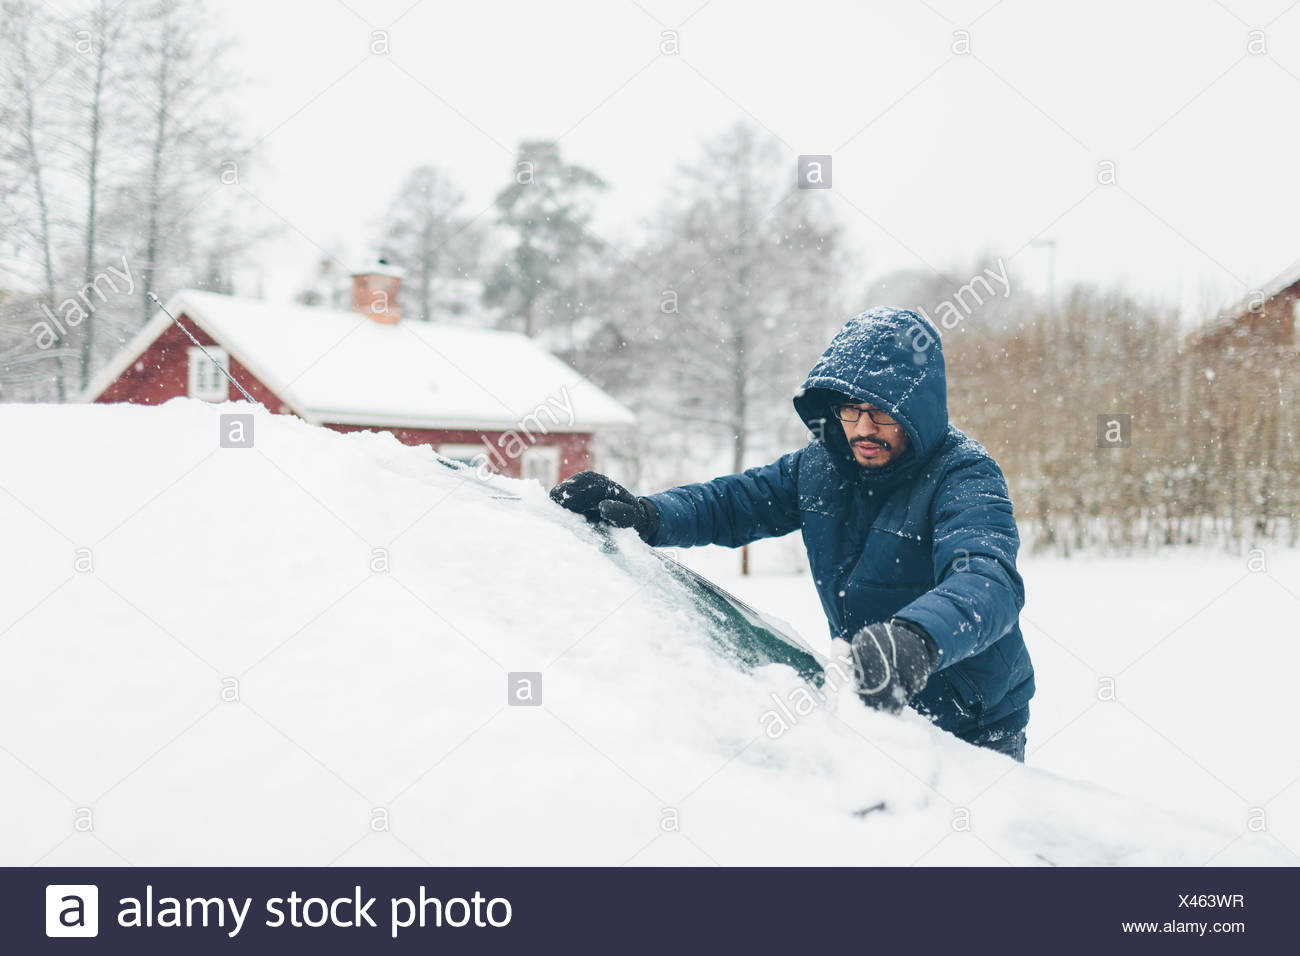 Man clearing snow from his car - Stock Image